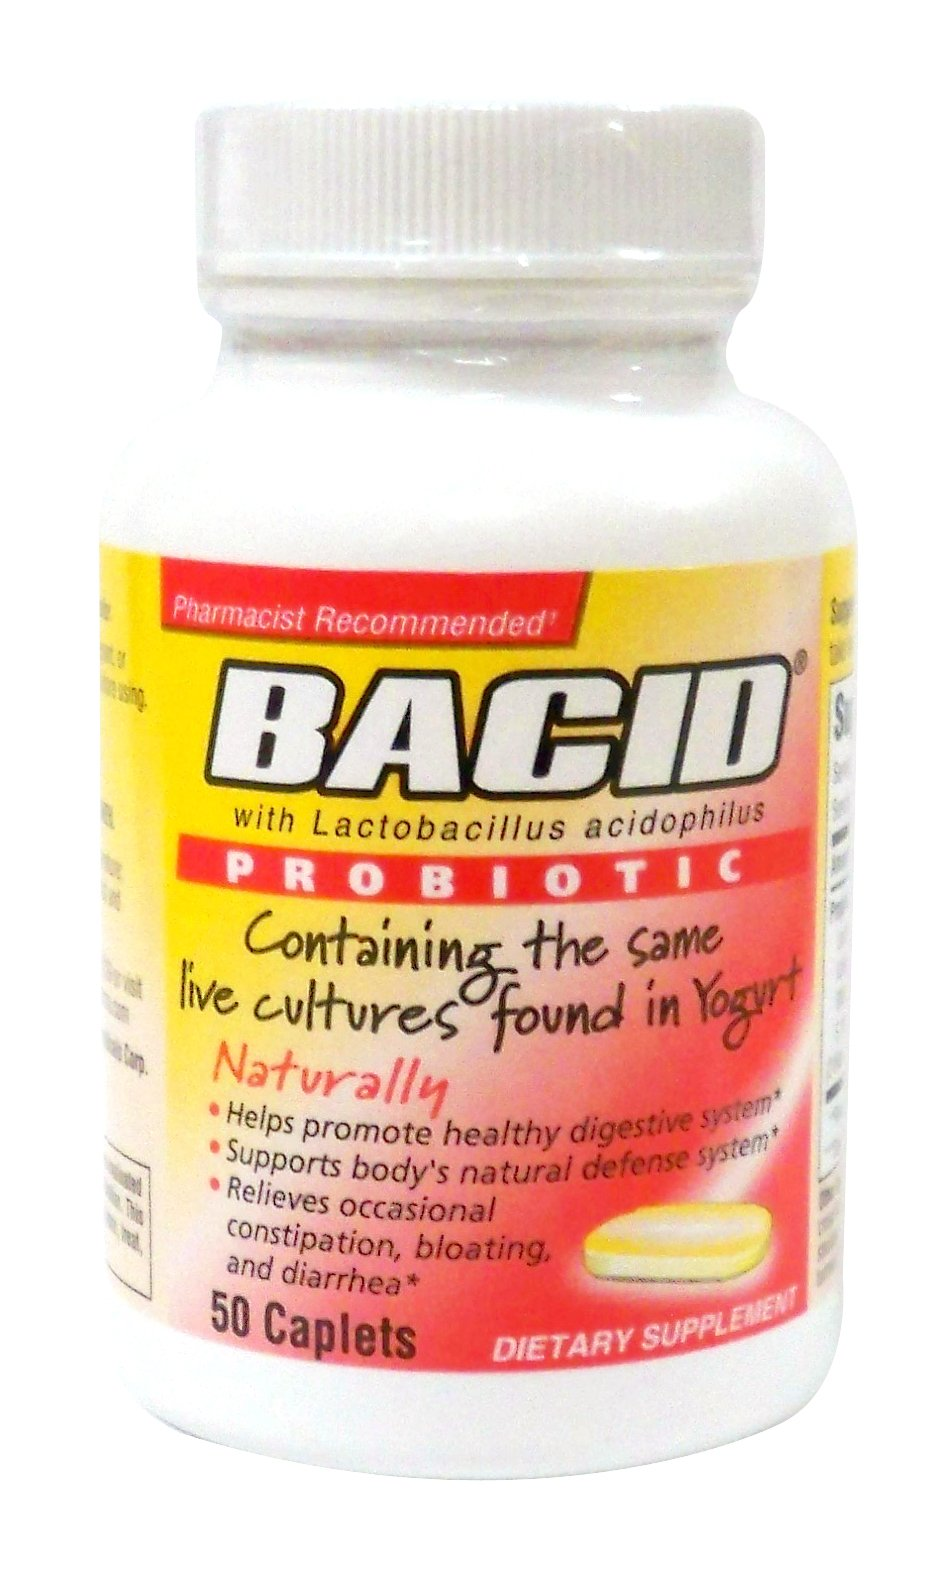 Amazon.com: Bacid with Lactobacillus Acidophilus